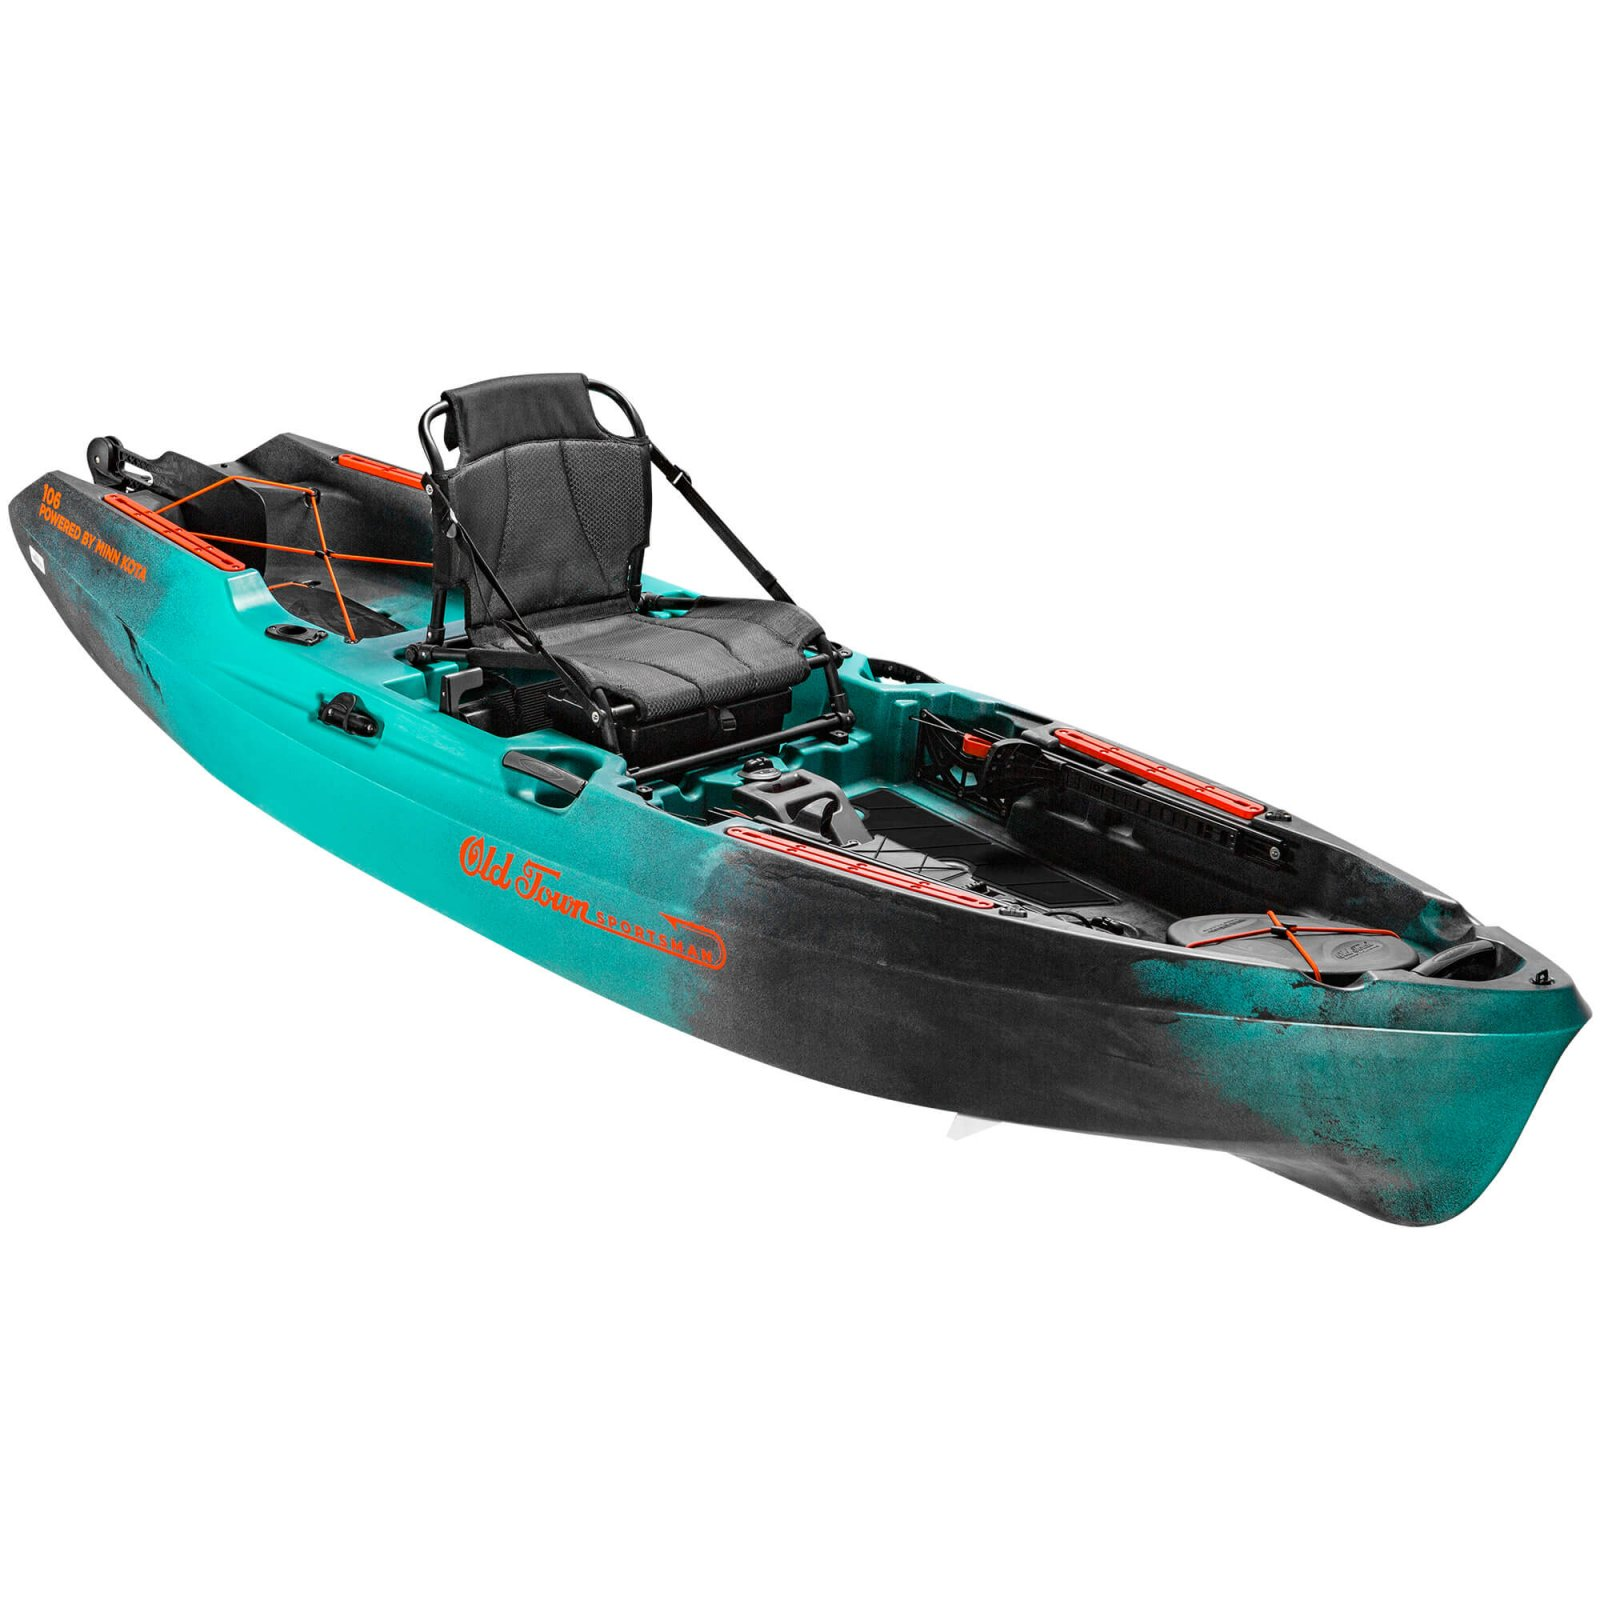 Sportsman PWR 106 - Call to reserve yours today!